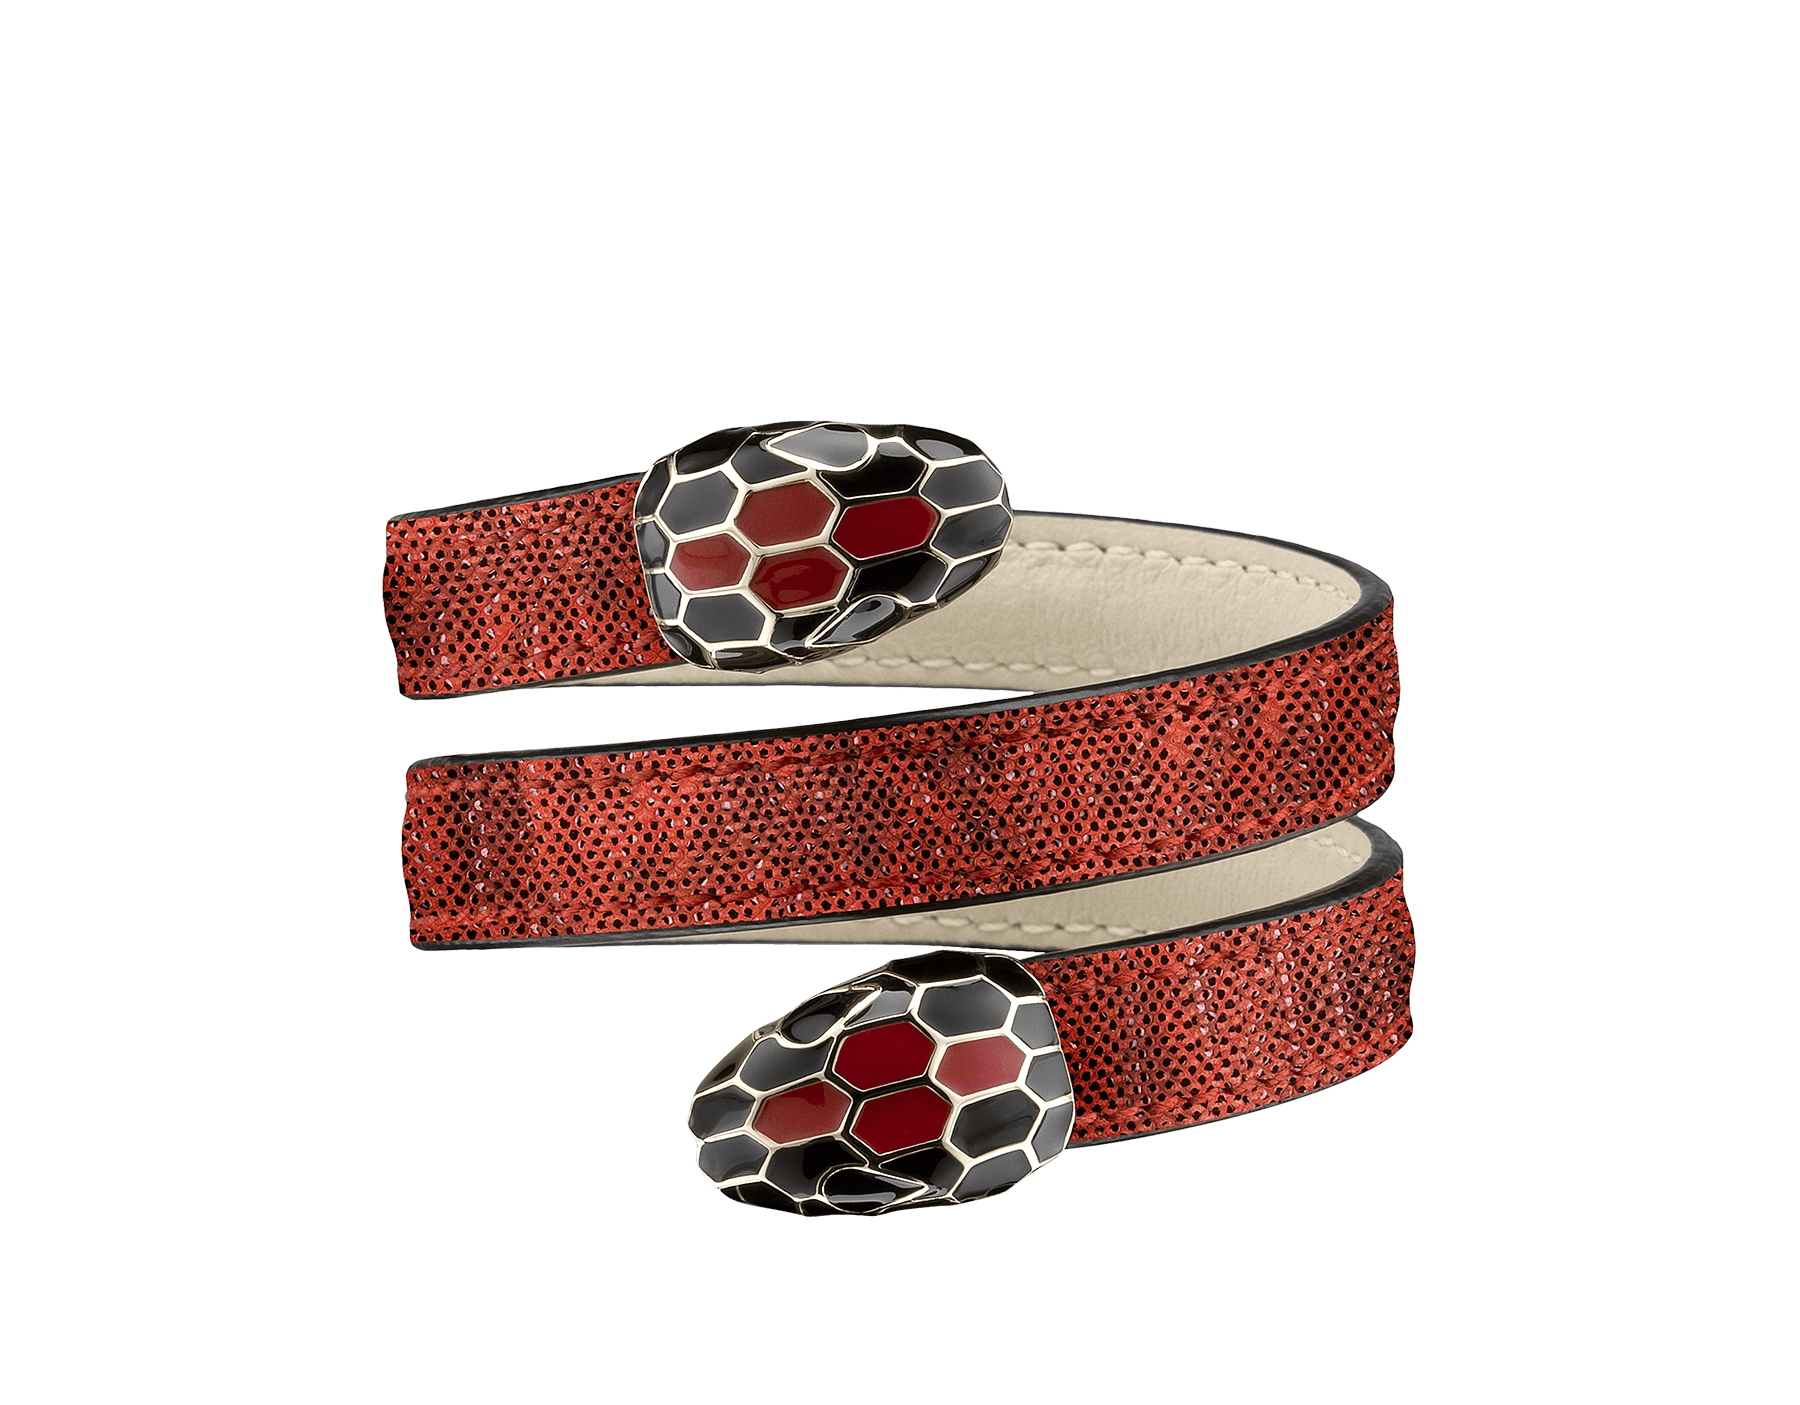 Serpenti Forever multi-coiled rigid Cleopatra bracelet in ruby red metallic karung skin, with brass light gold plated hardware. Iconic double snakehead décor in black and ruby red enamel, with black enamel eyes Cleopatra-MK-RR image 1